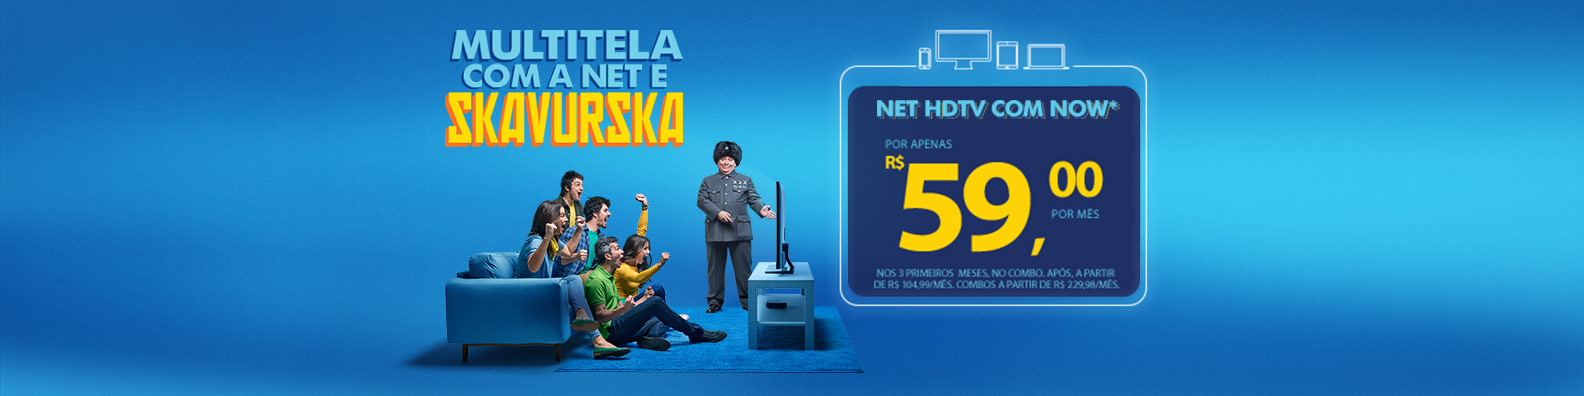 net facil hd mais de 80 canais e 10 hd no combo